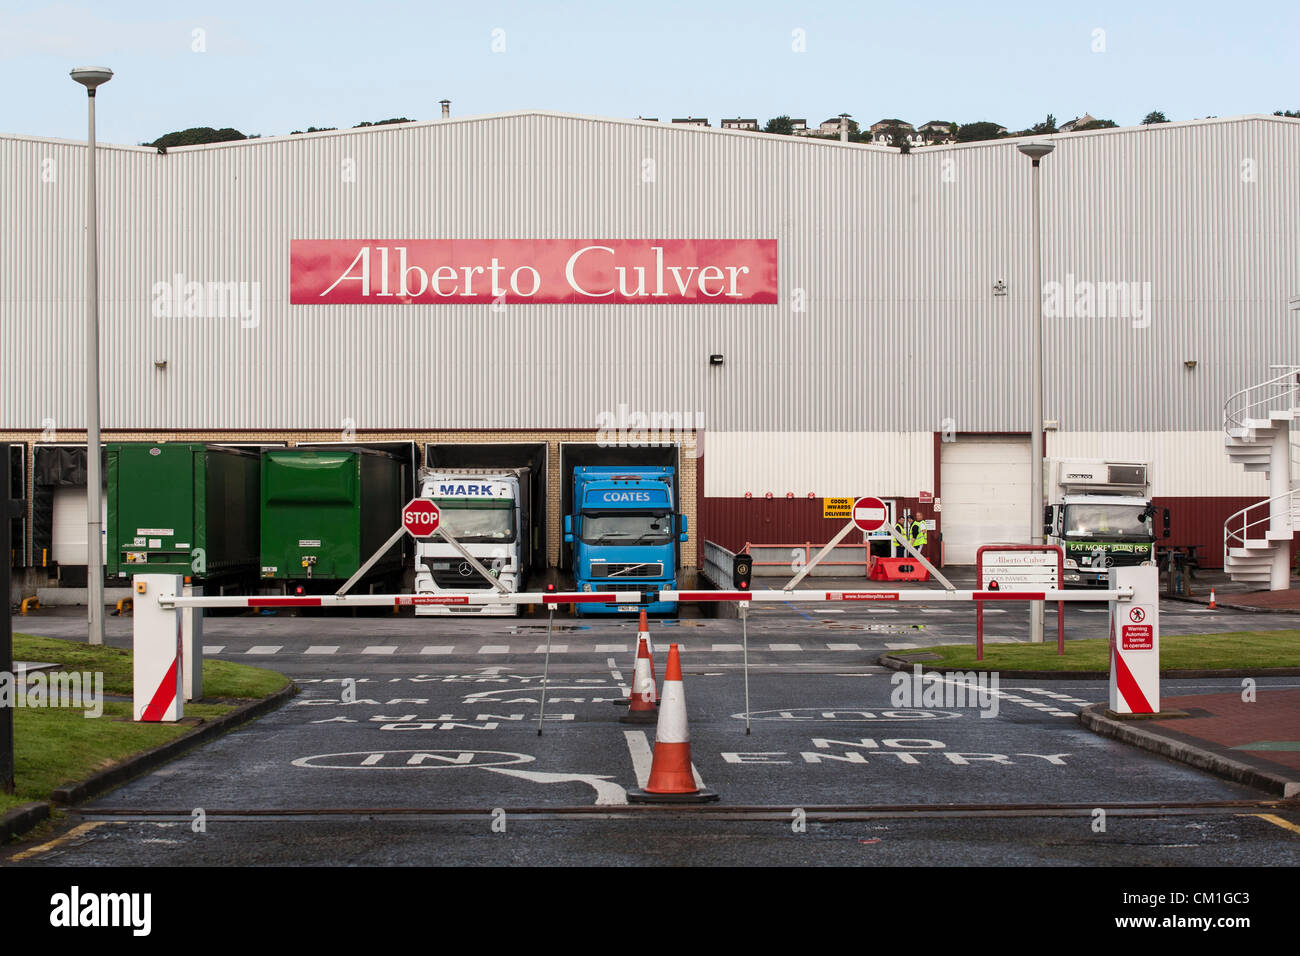 General view of the Alberto Culver factory in Swansea Enterprise park in Wales, UK on Friday 14th September, 2012. - Stock Image